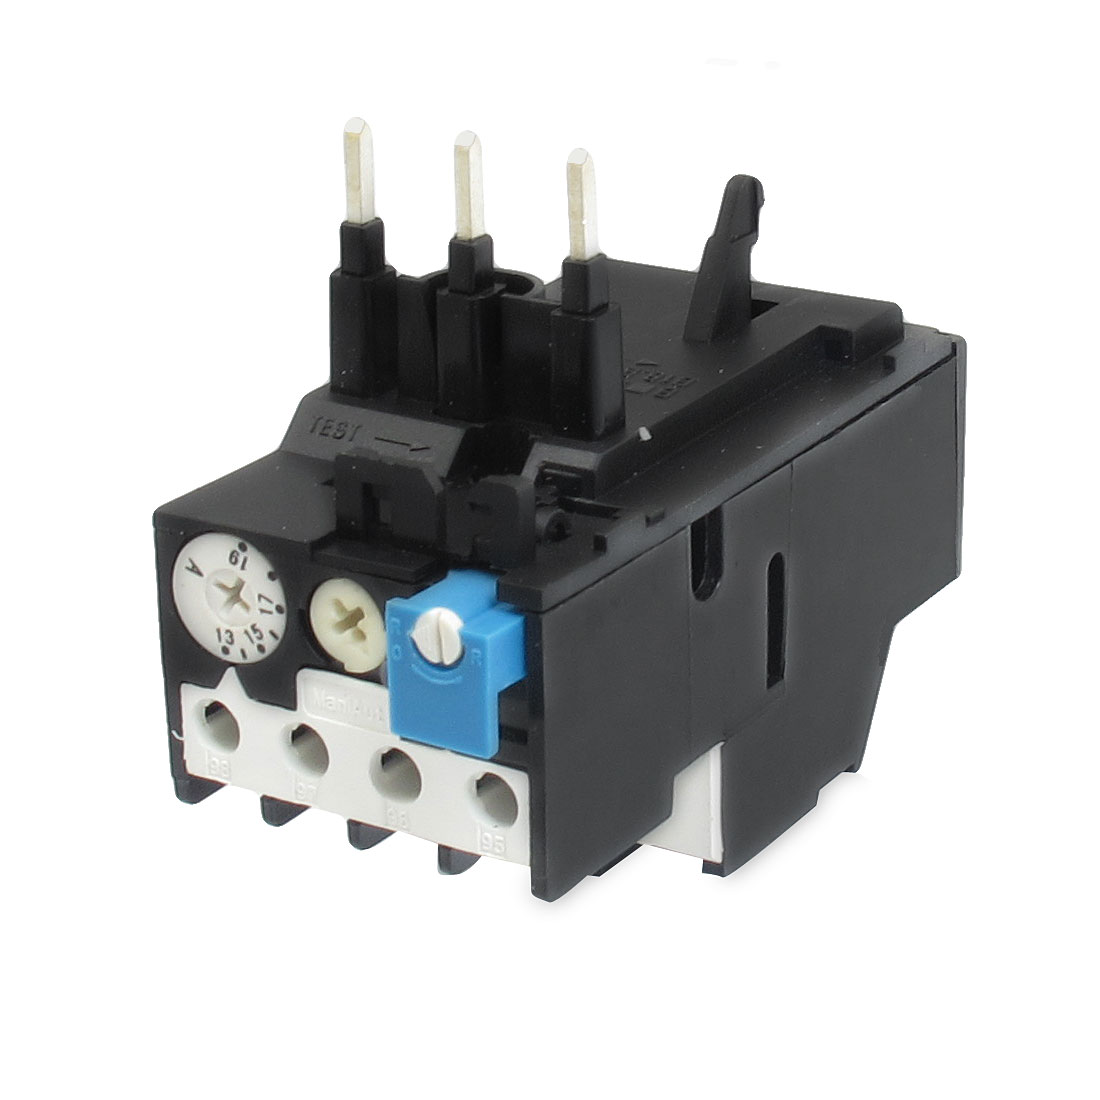 13-19A Adjusting Range 3 Poles 1NO 1NC Thermal Overload Relay